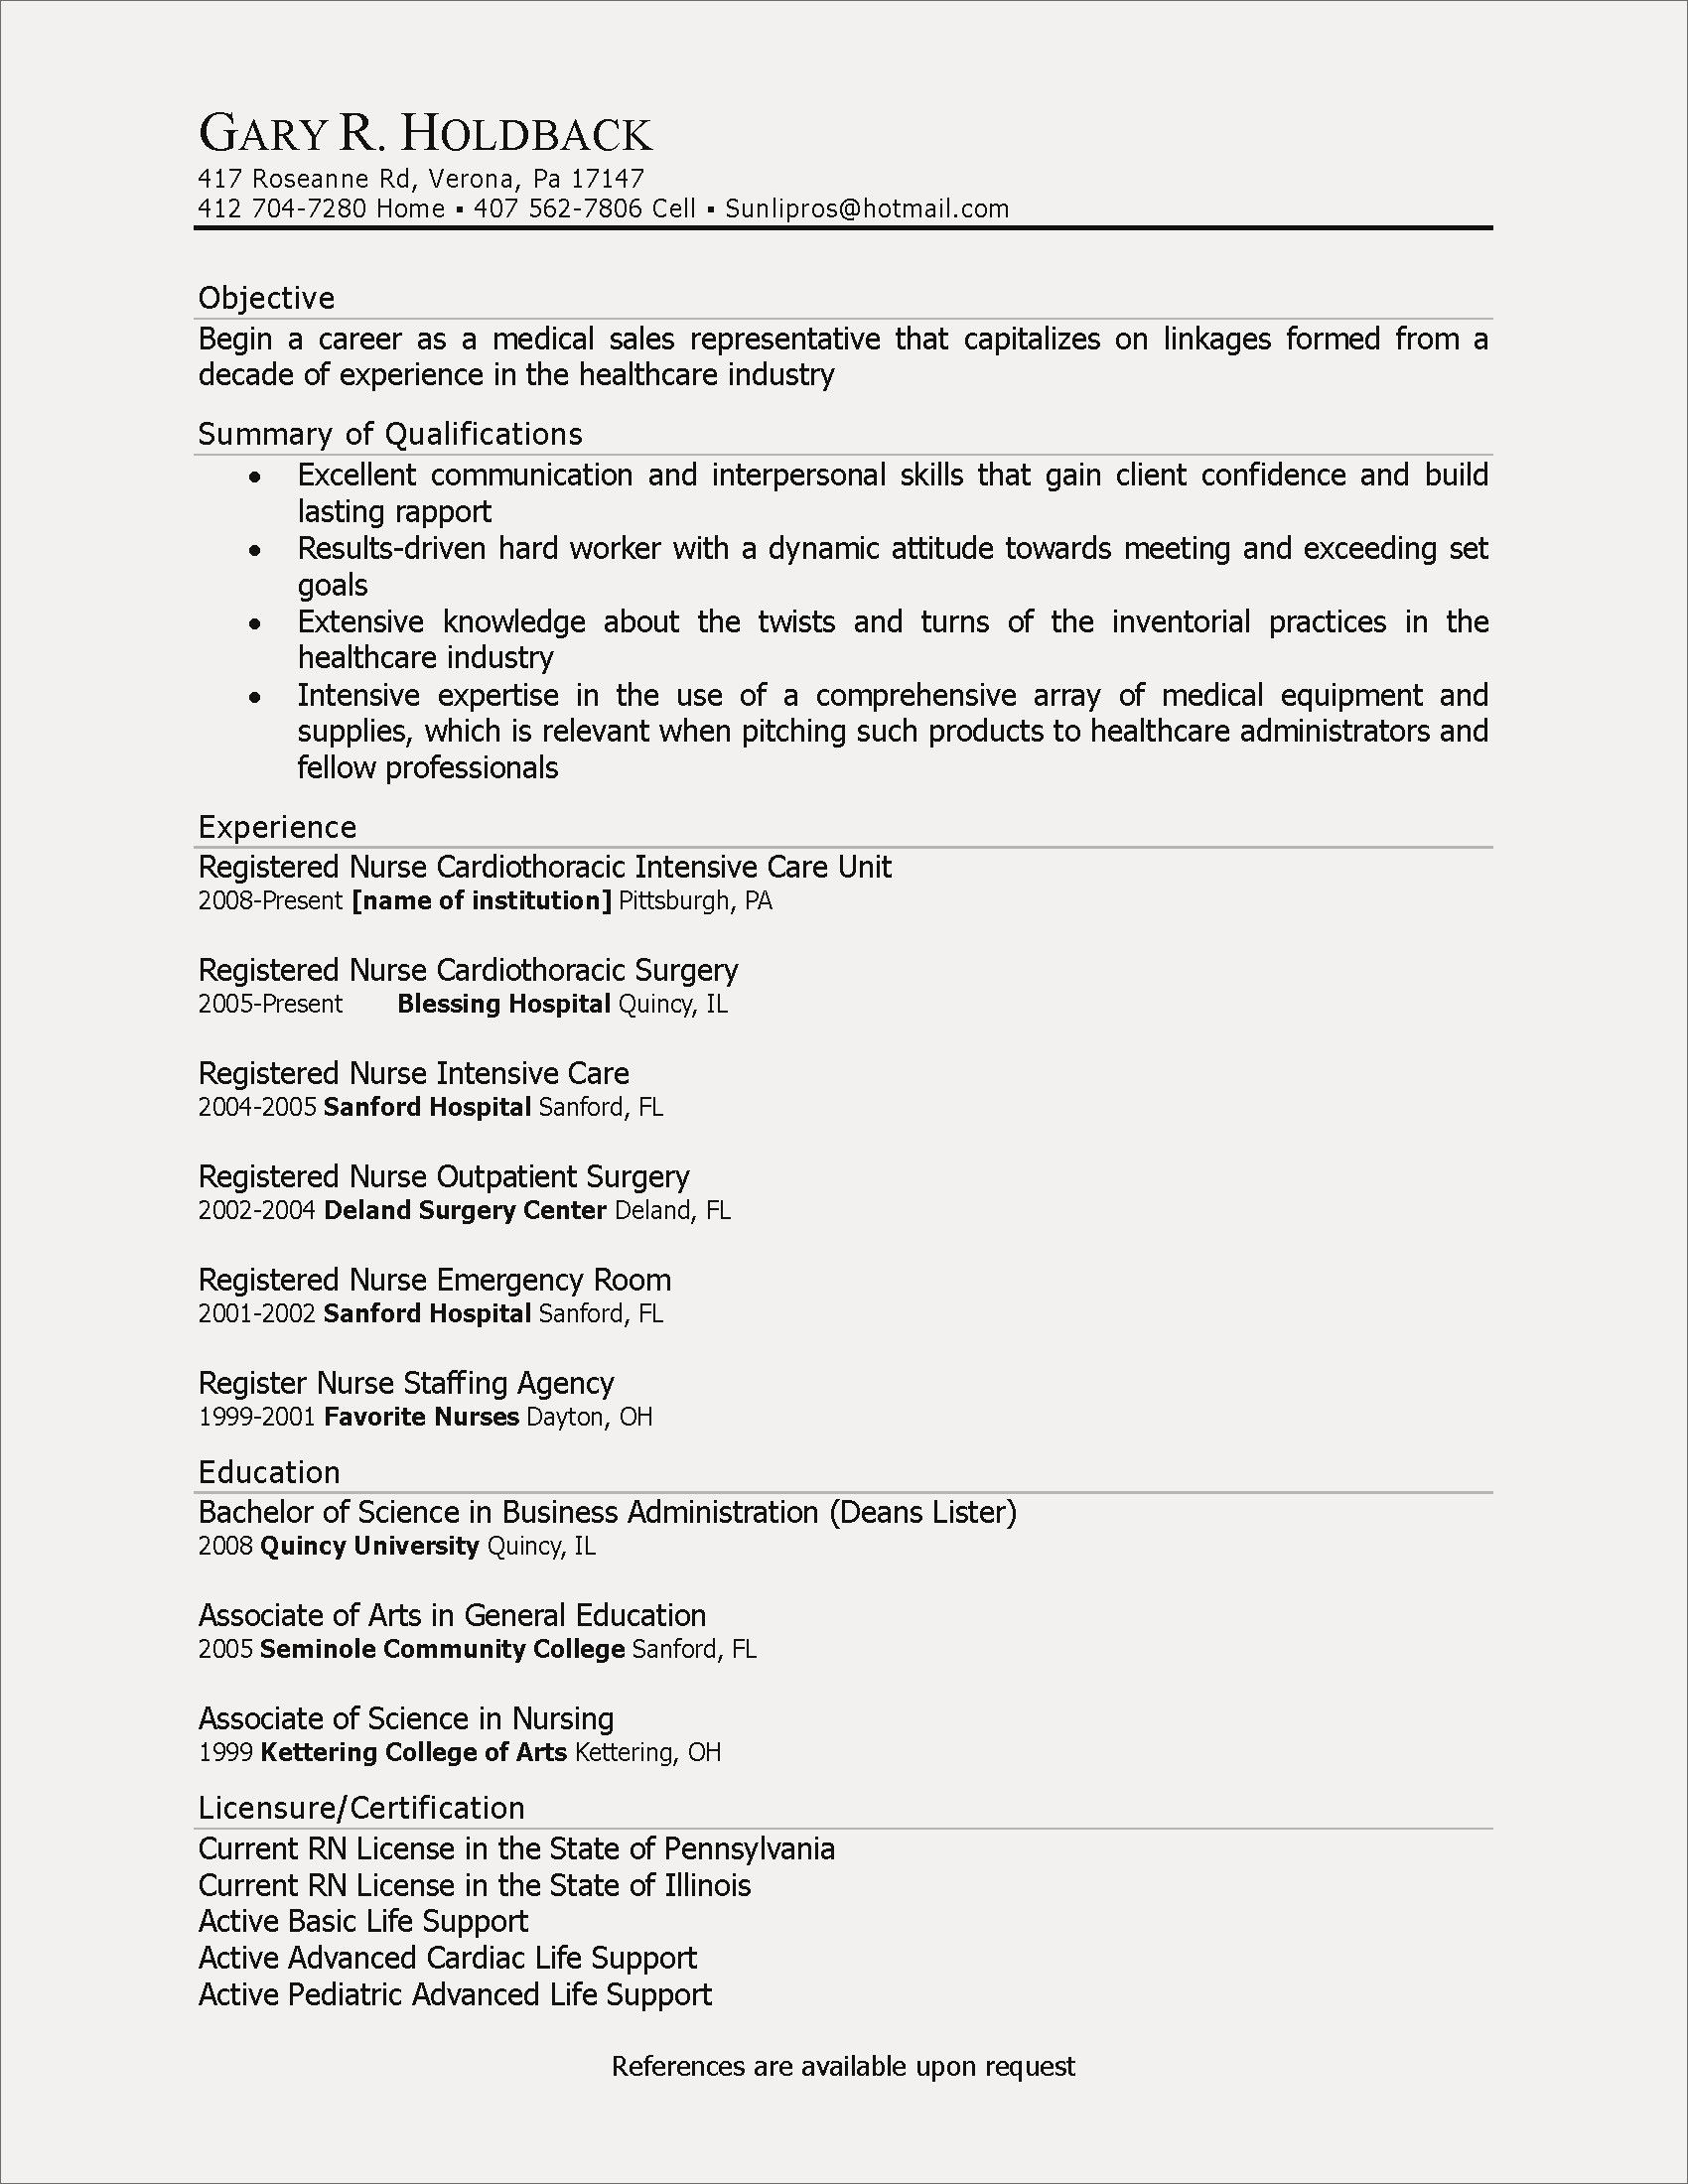 Salesperson Resume Template - Sales Resume Template – Luxury Grapher Resume Sample Beautiful